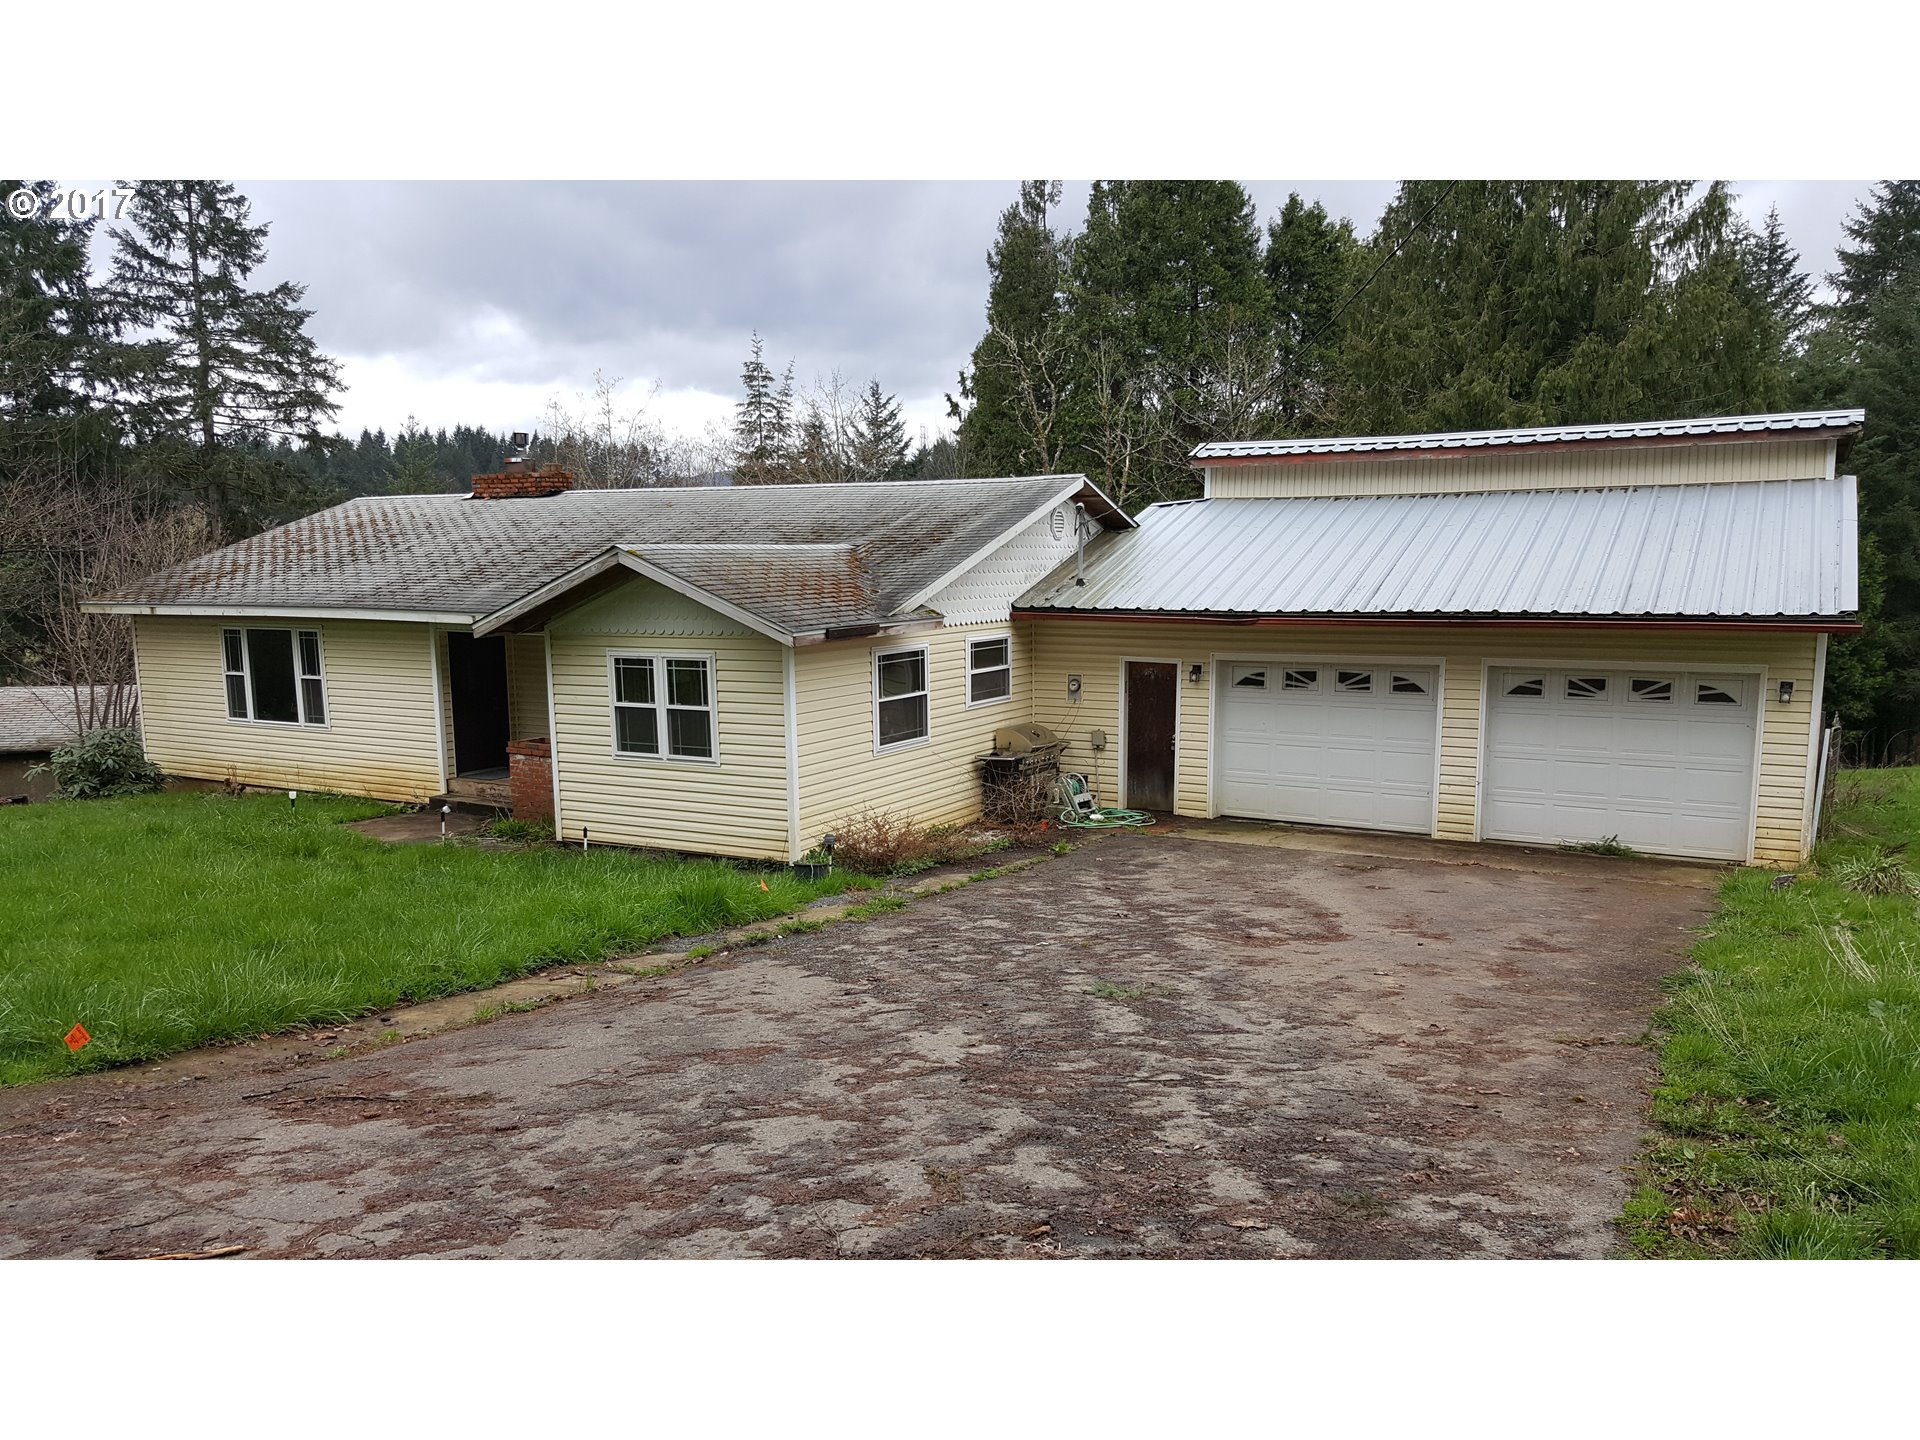 61225 BARGER RD, St. Helens, OR 97051